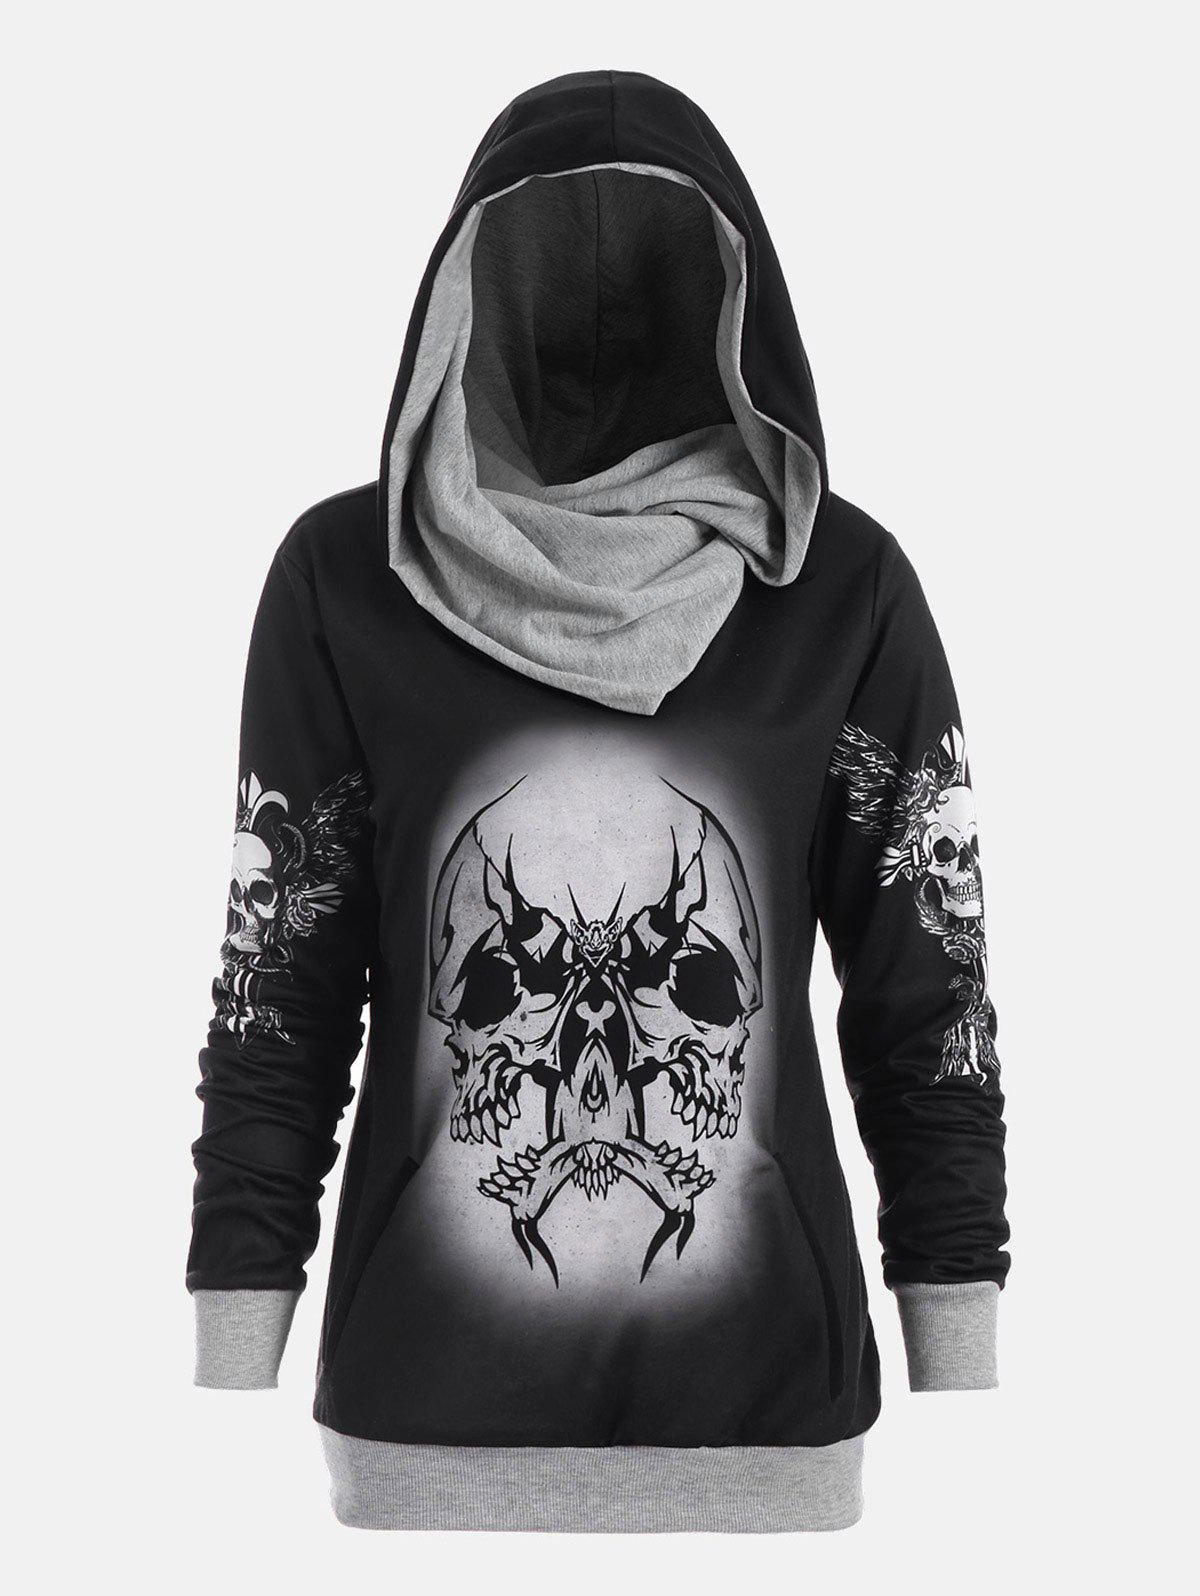 Skull and Wings Print Halloween Hoodie - GRAY M